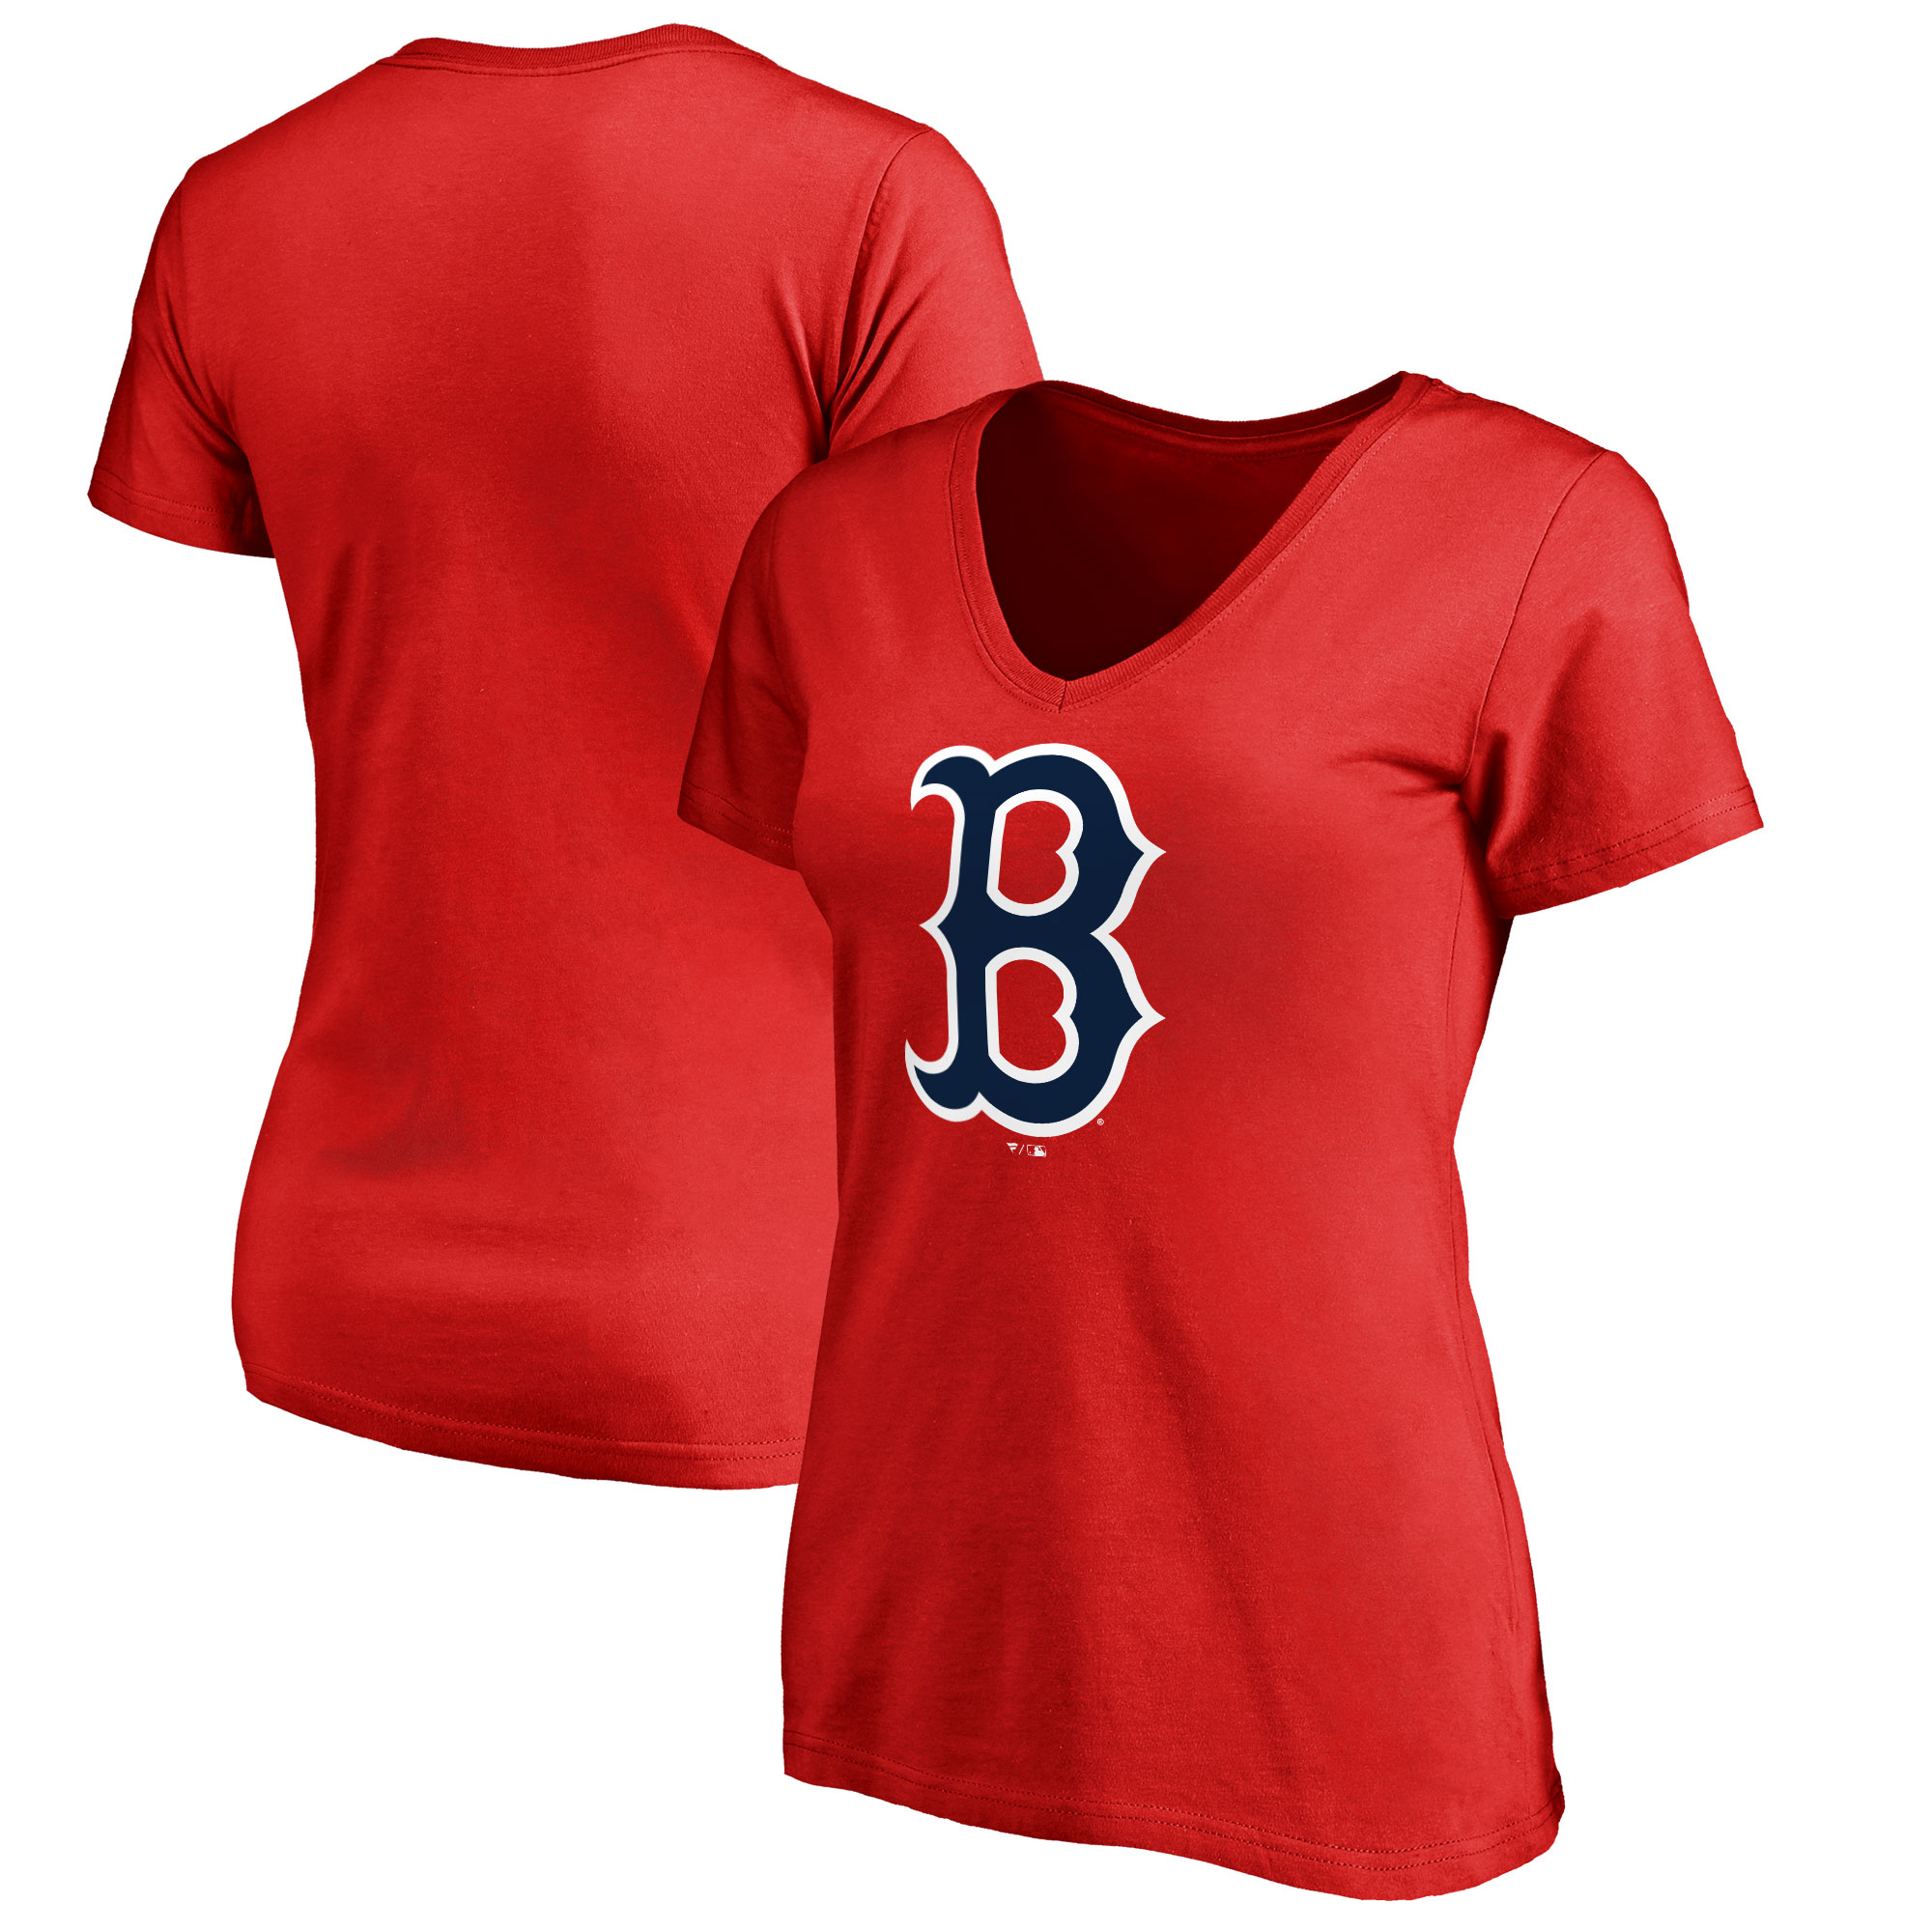 Boston Red Sox Women's Plus Sizes Primary Team Logo T-Shirt - Red